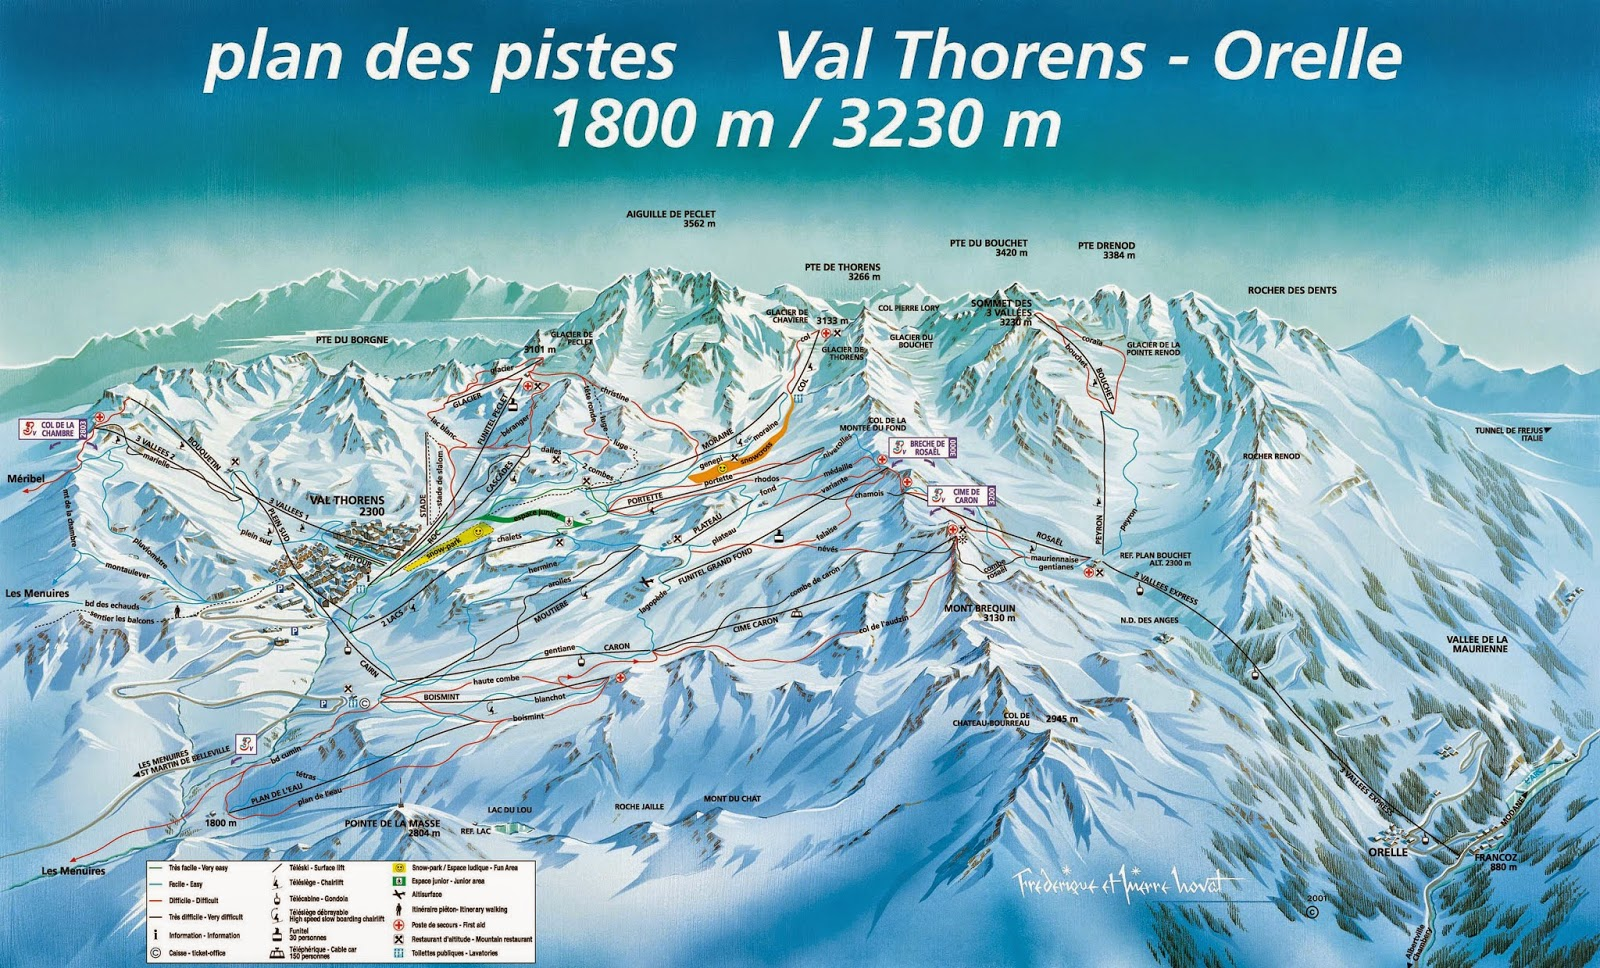 Domaine skiable Val Thorens